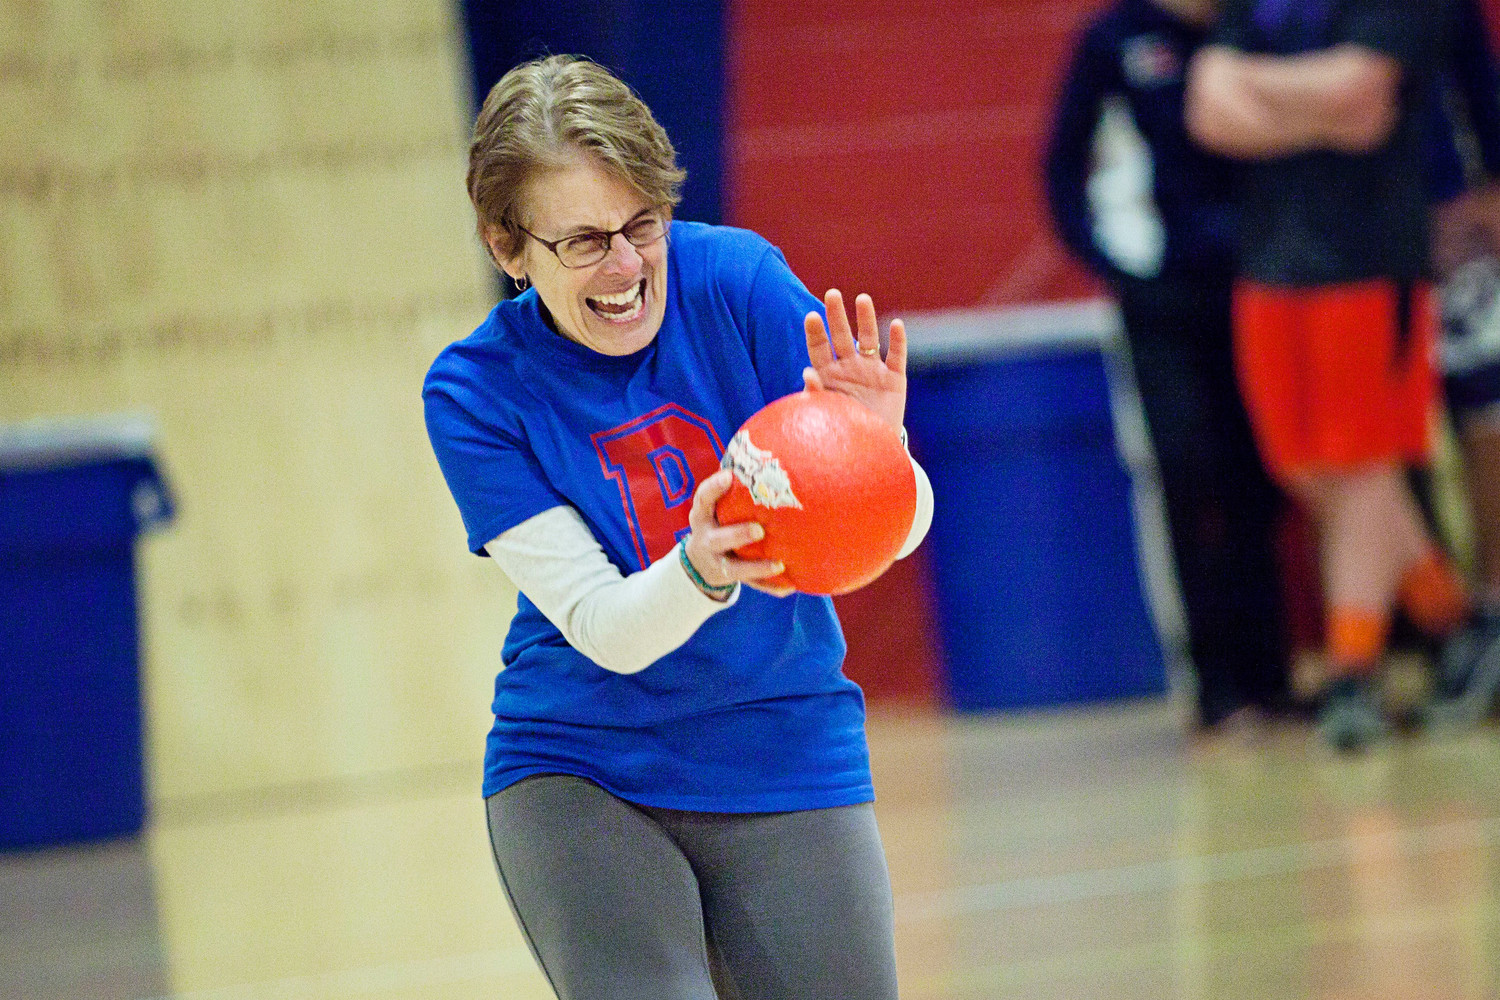 School Committee Chairwoman Terry Cortvriend, a member of The Hard Targets, flinches as a ball comes toward her.